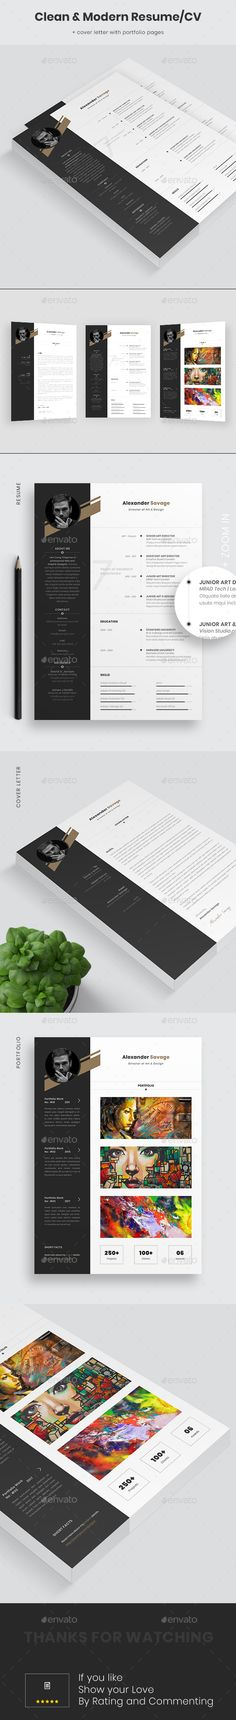 Resume Booklet Design Template InDesign INDD - 8 Custom Pages, A4 ...